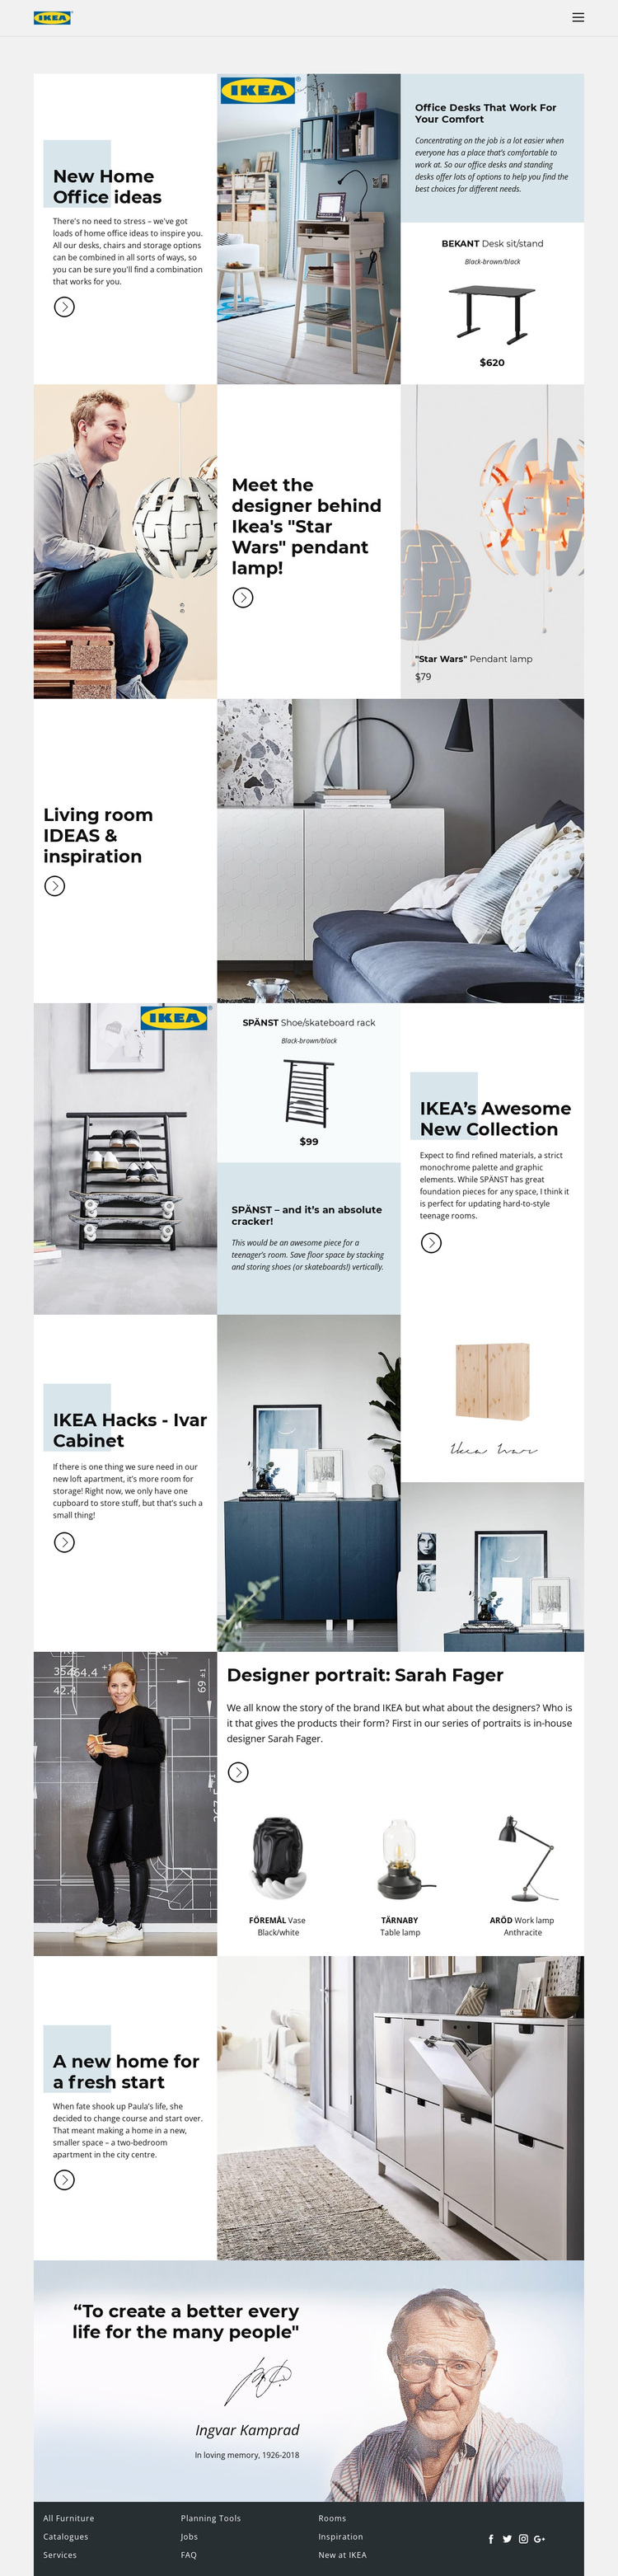 Inspiration from IKEA Joomla Page Builder